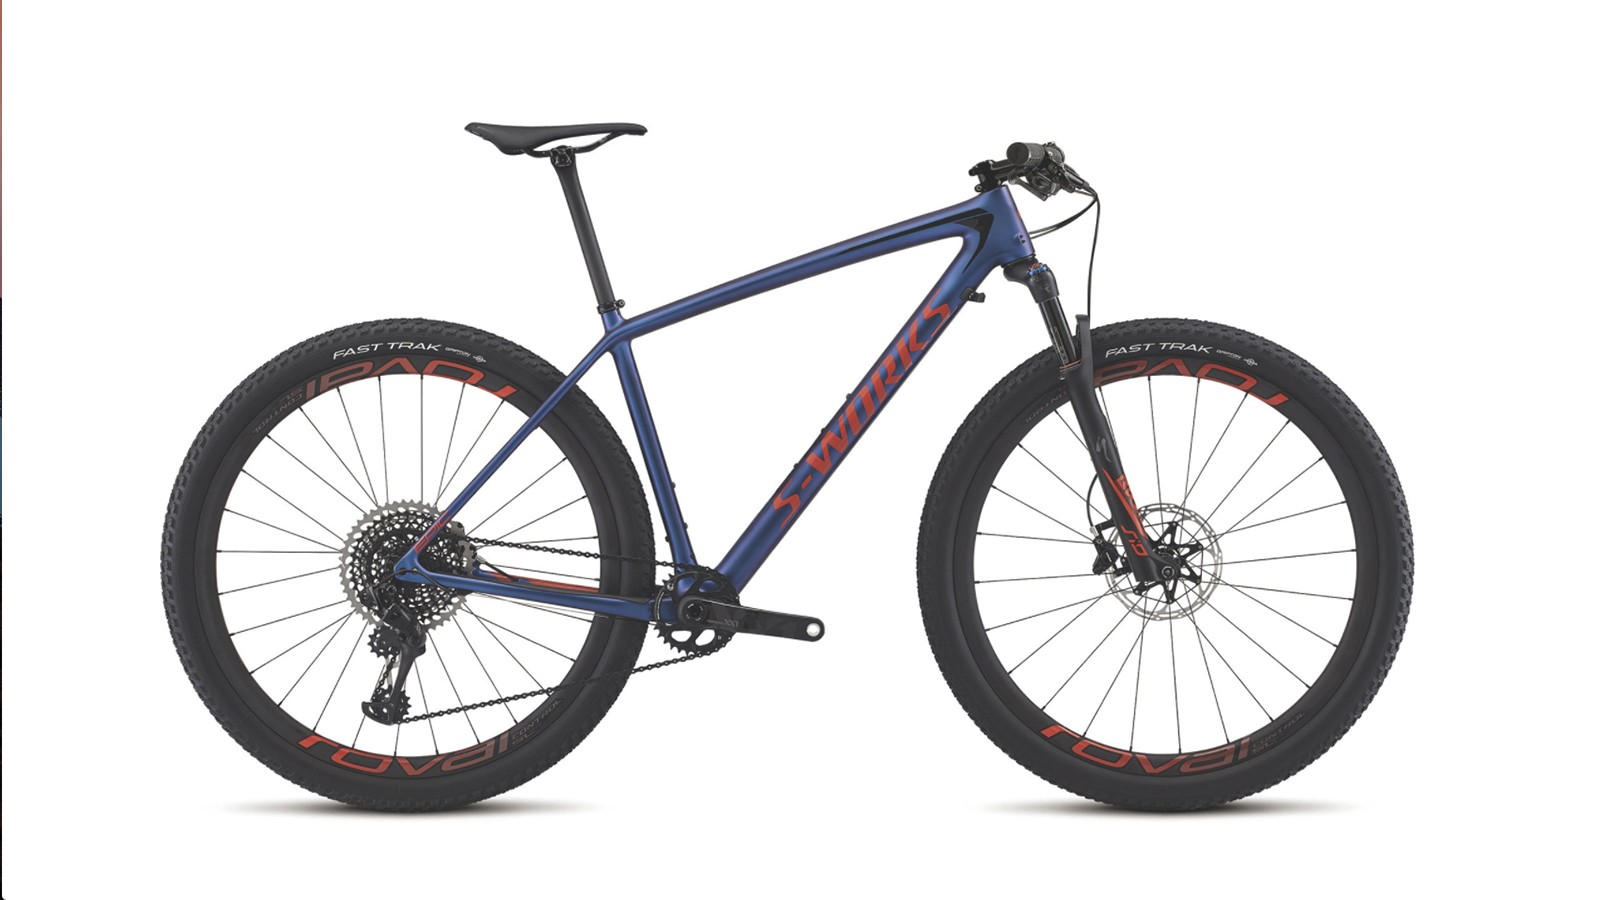 The complete bike is said to be well under 20lbs, according to Specialized